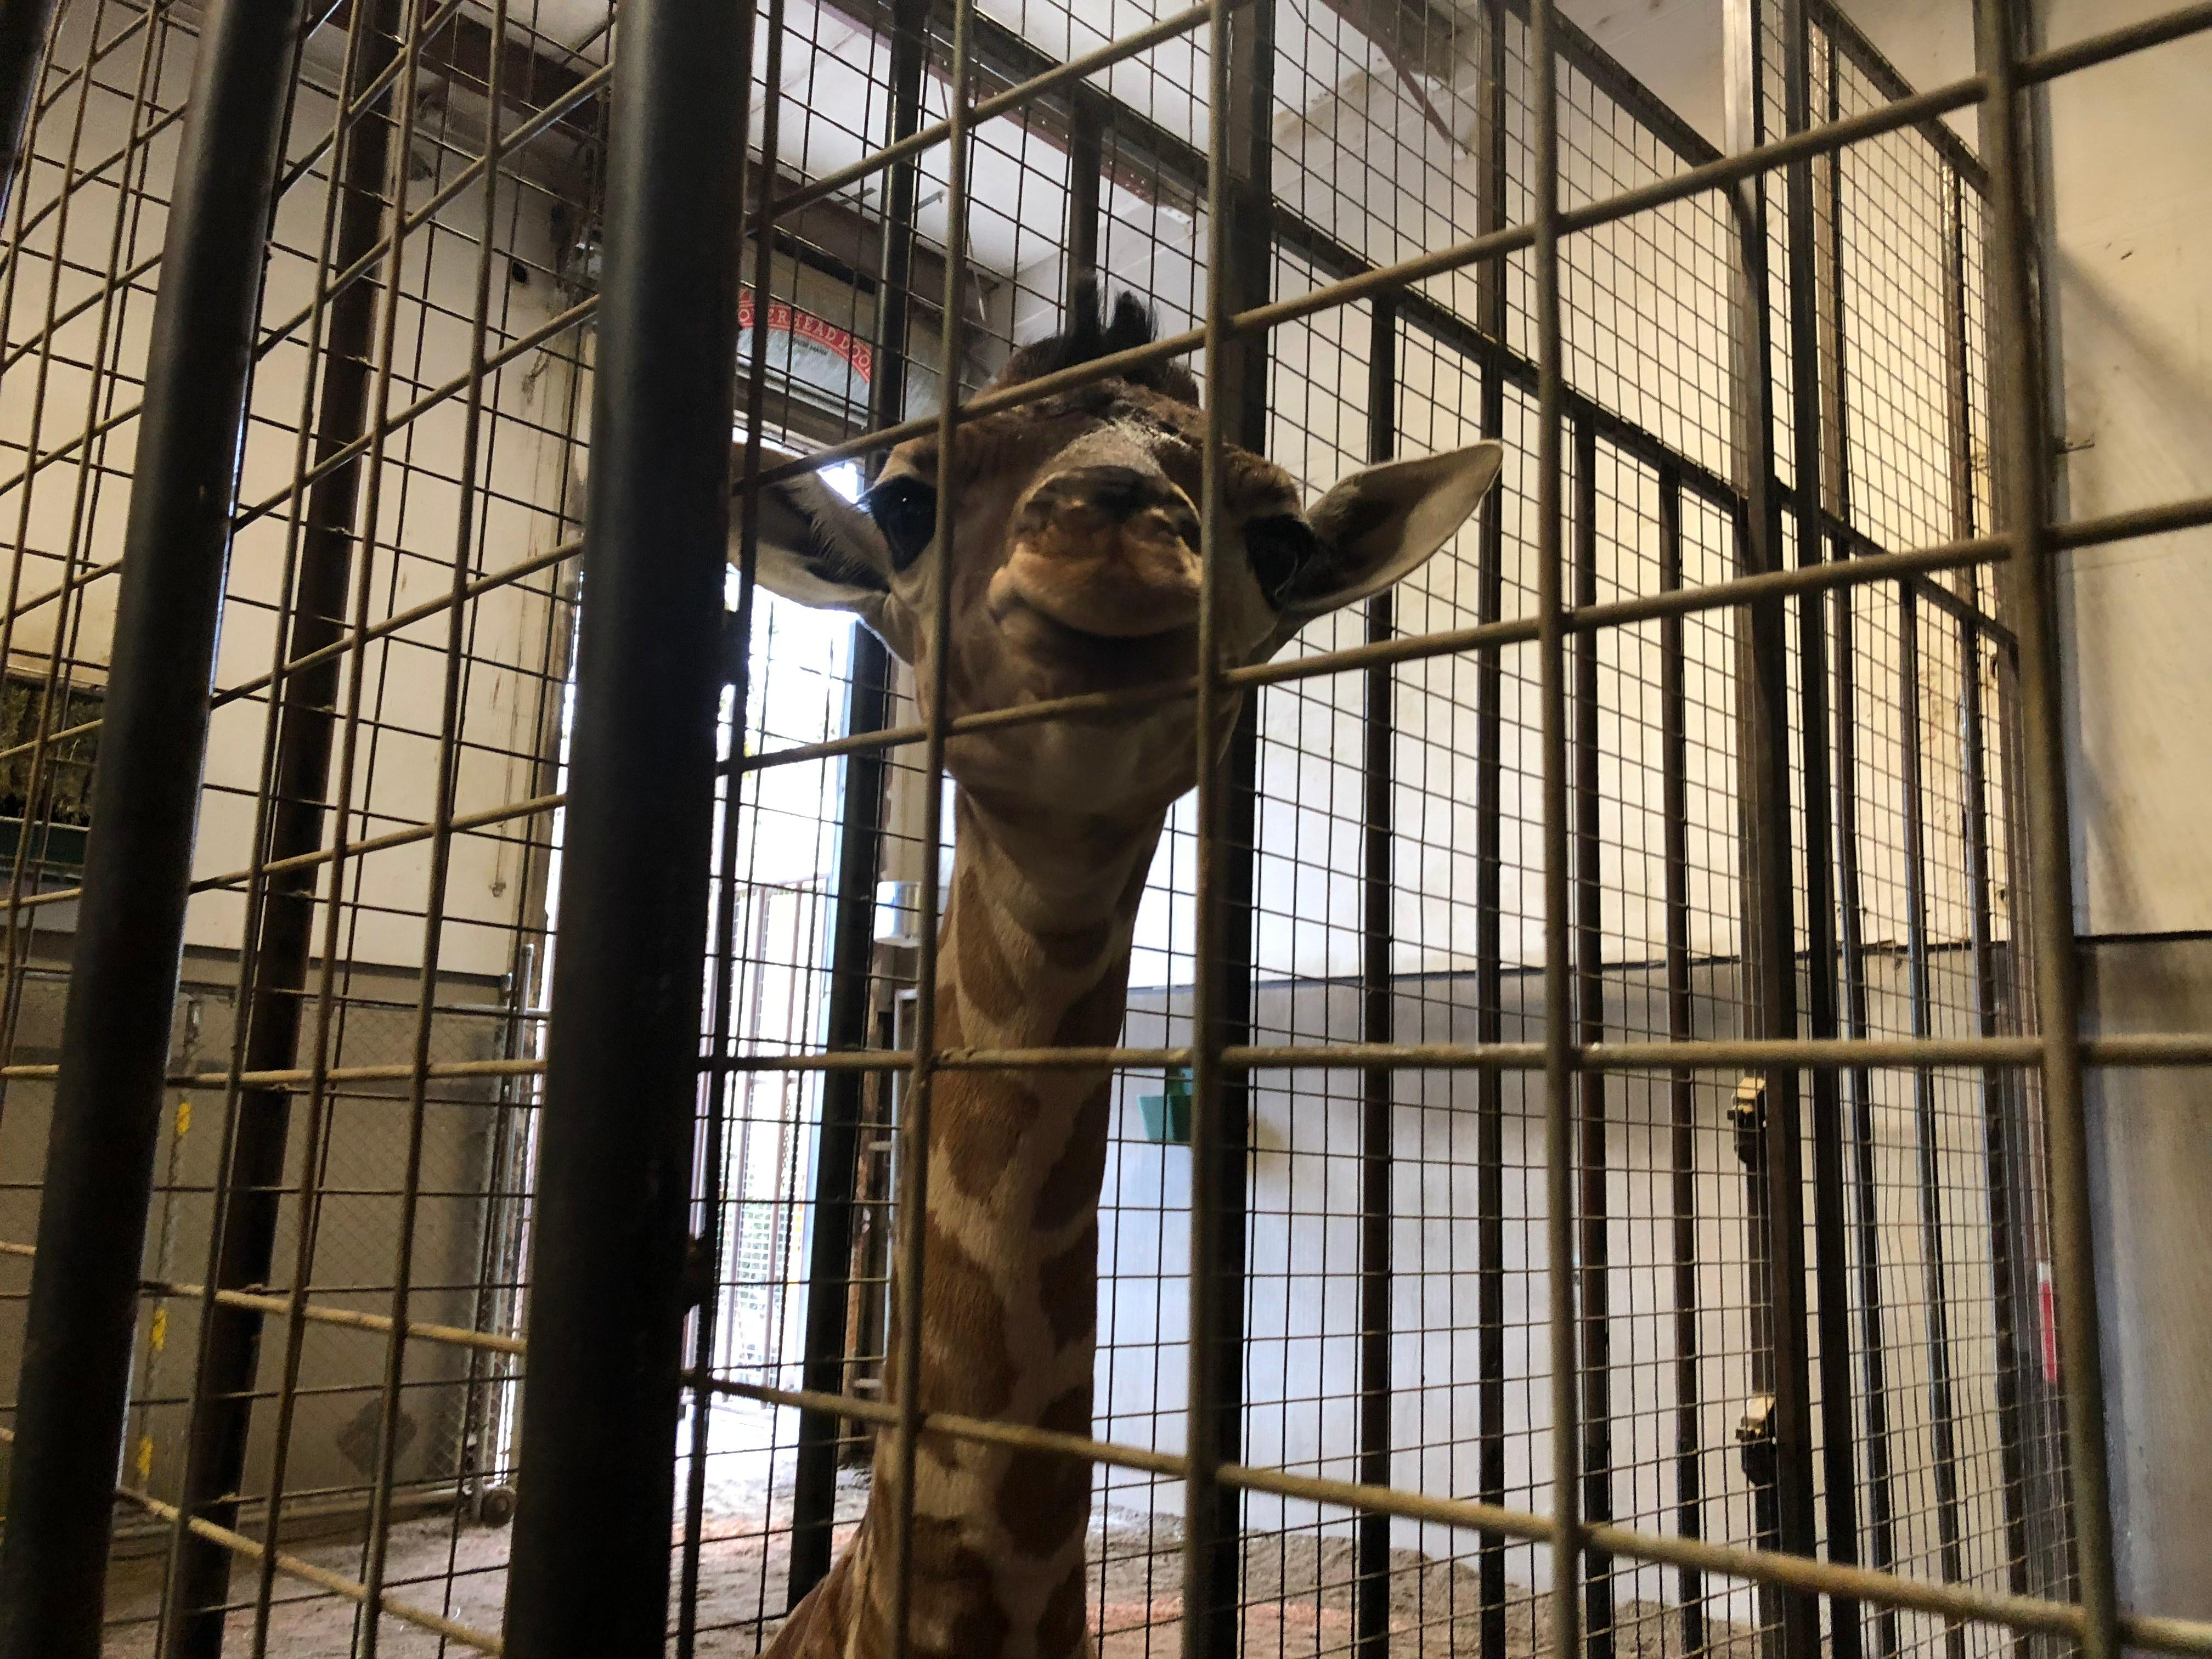 <p>A female giraffe was born March 4, 2018, at Wildlife Safari in Winston, Oregon. The park plans to announce major news about the baby girl's name by the start of spring break, which begins for the park on March 16. (SBG)</p>